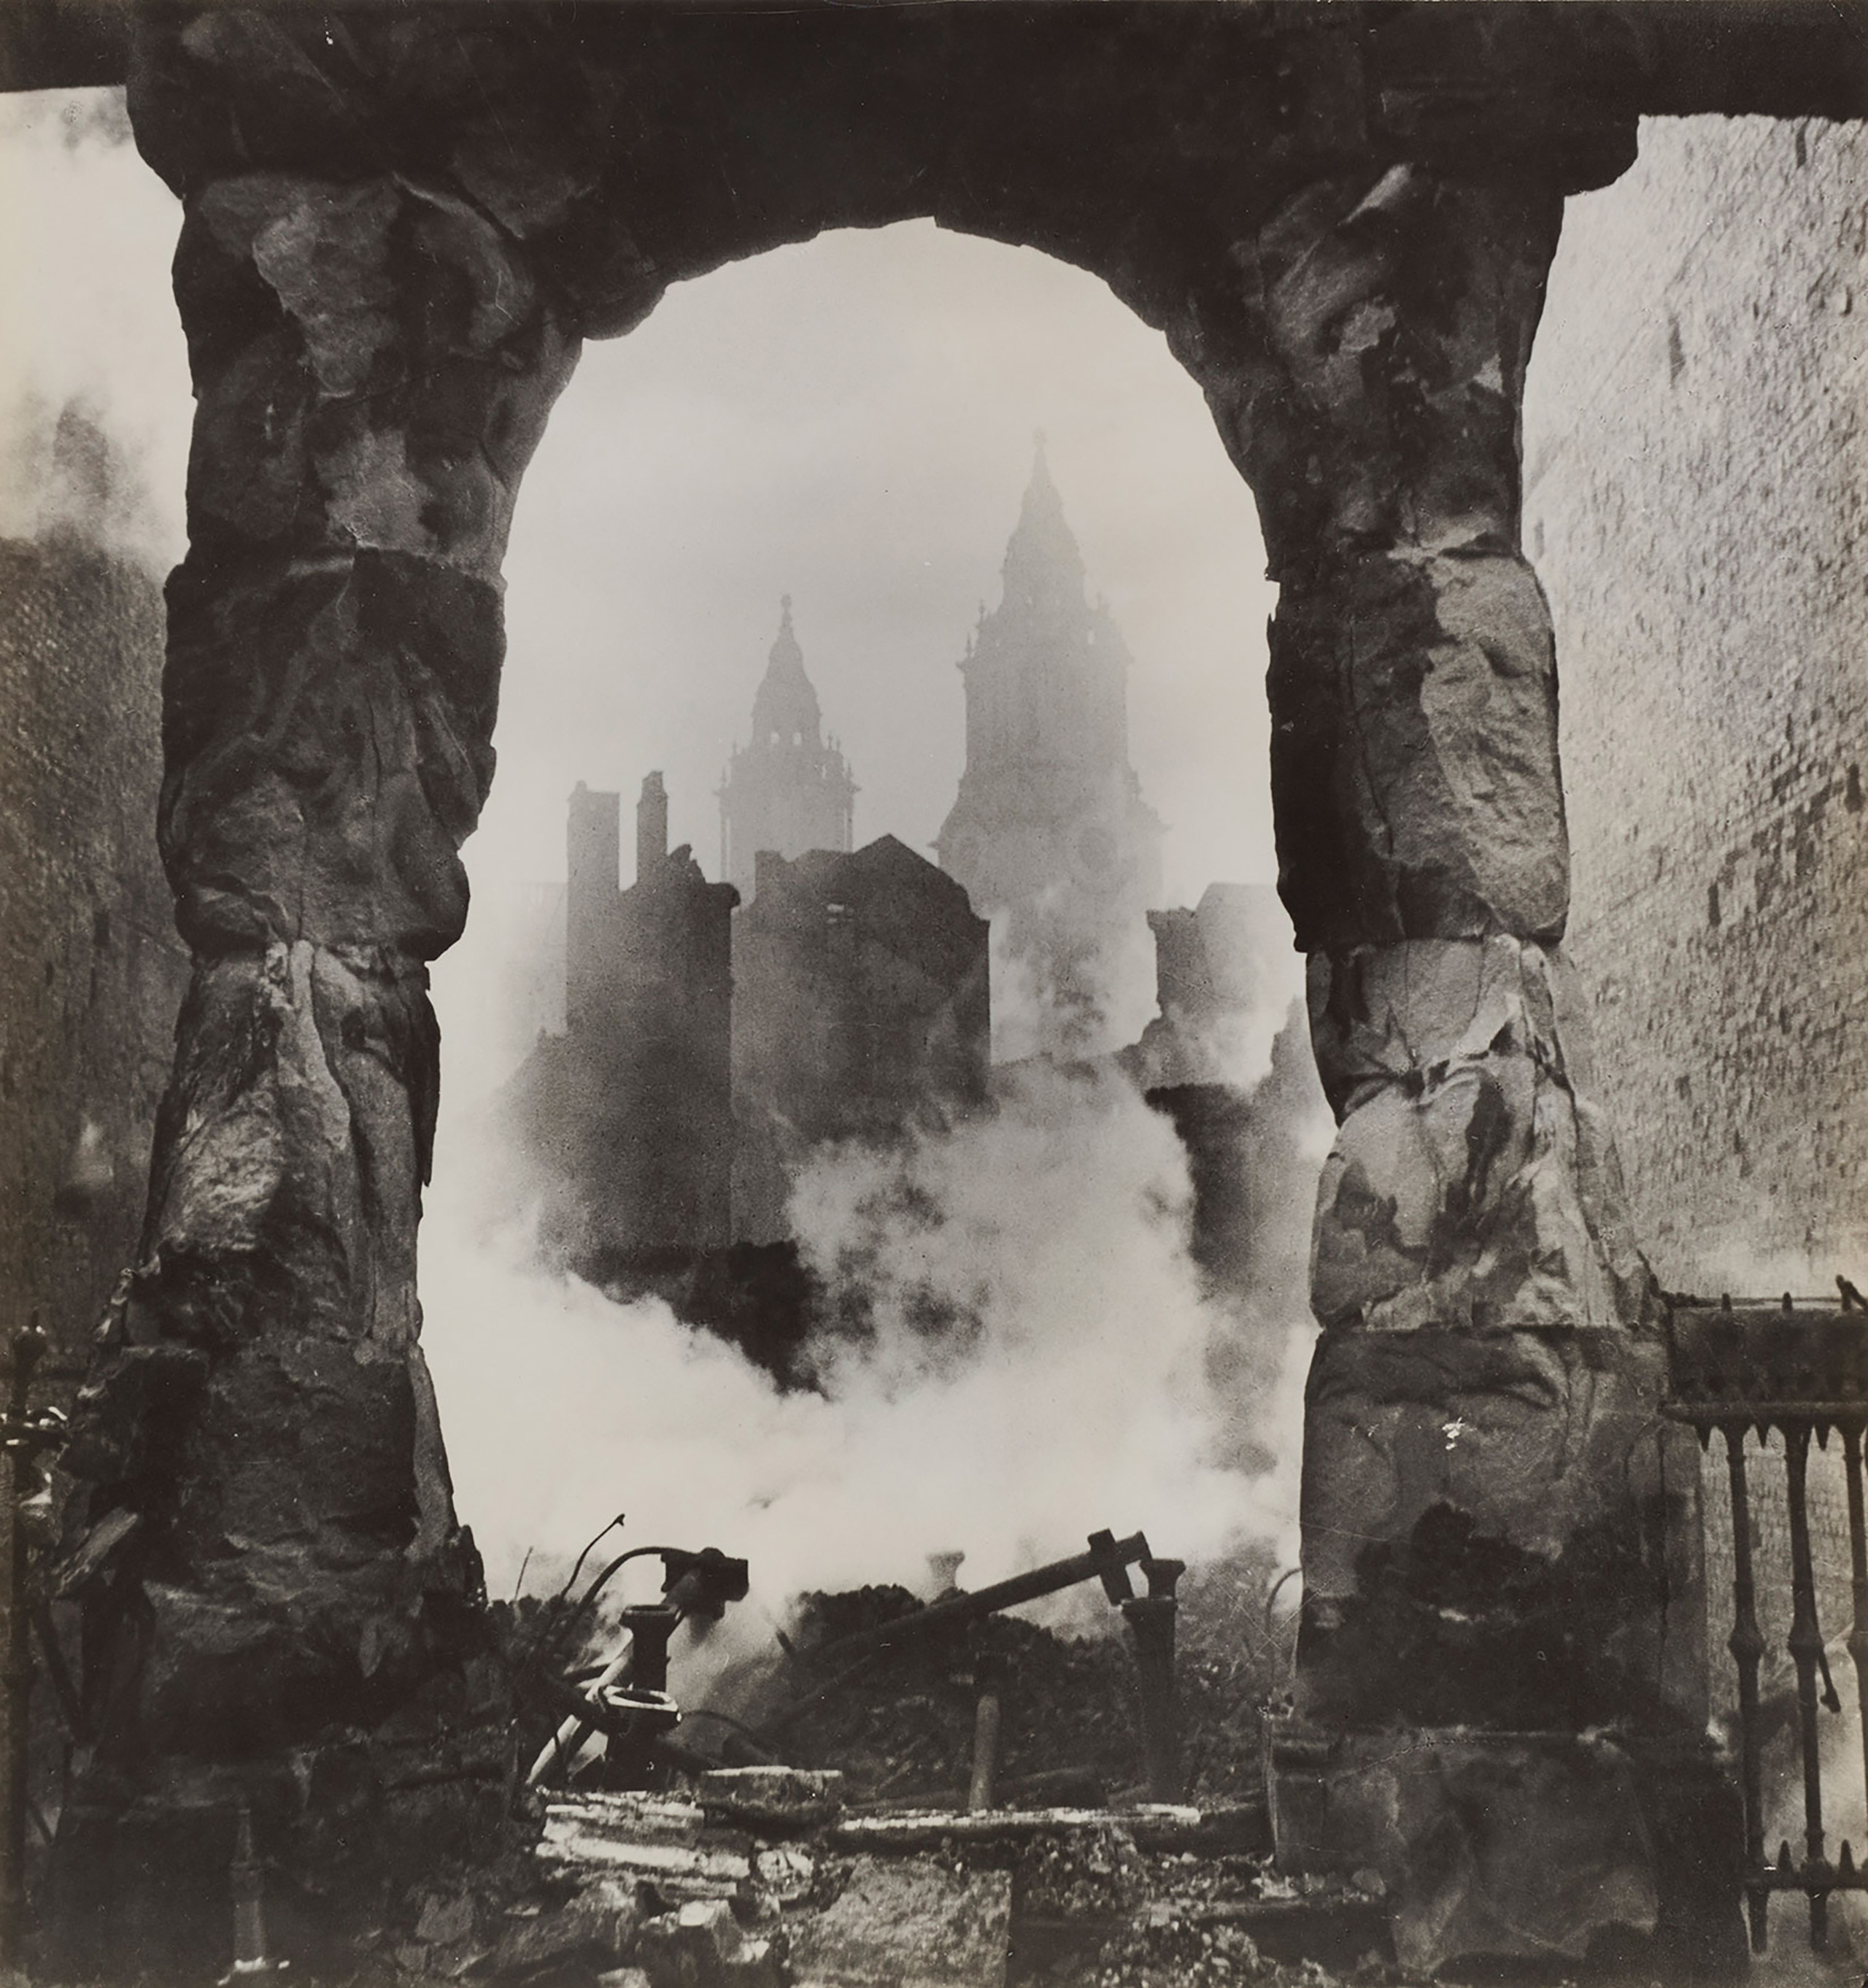 London's Honorable Scars, Santa Barbara Museum of Art, Calif.: Sept. 18 - Jan. 8, 2017                                                              (Caption: Cecil Beaton, St. Paul's seen through a Victorian Shopfront, circa 1940, Gift of Mrs. Ala Story)